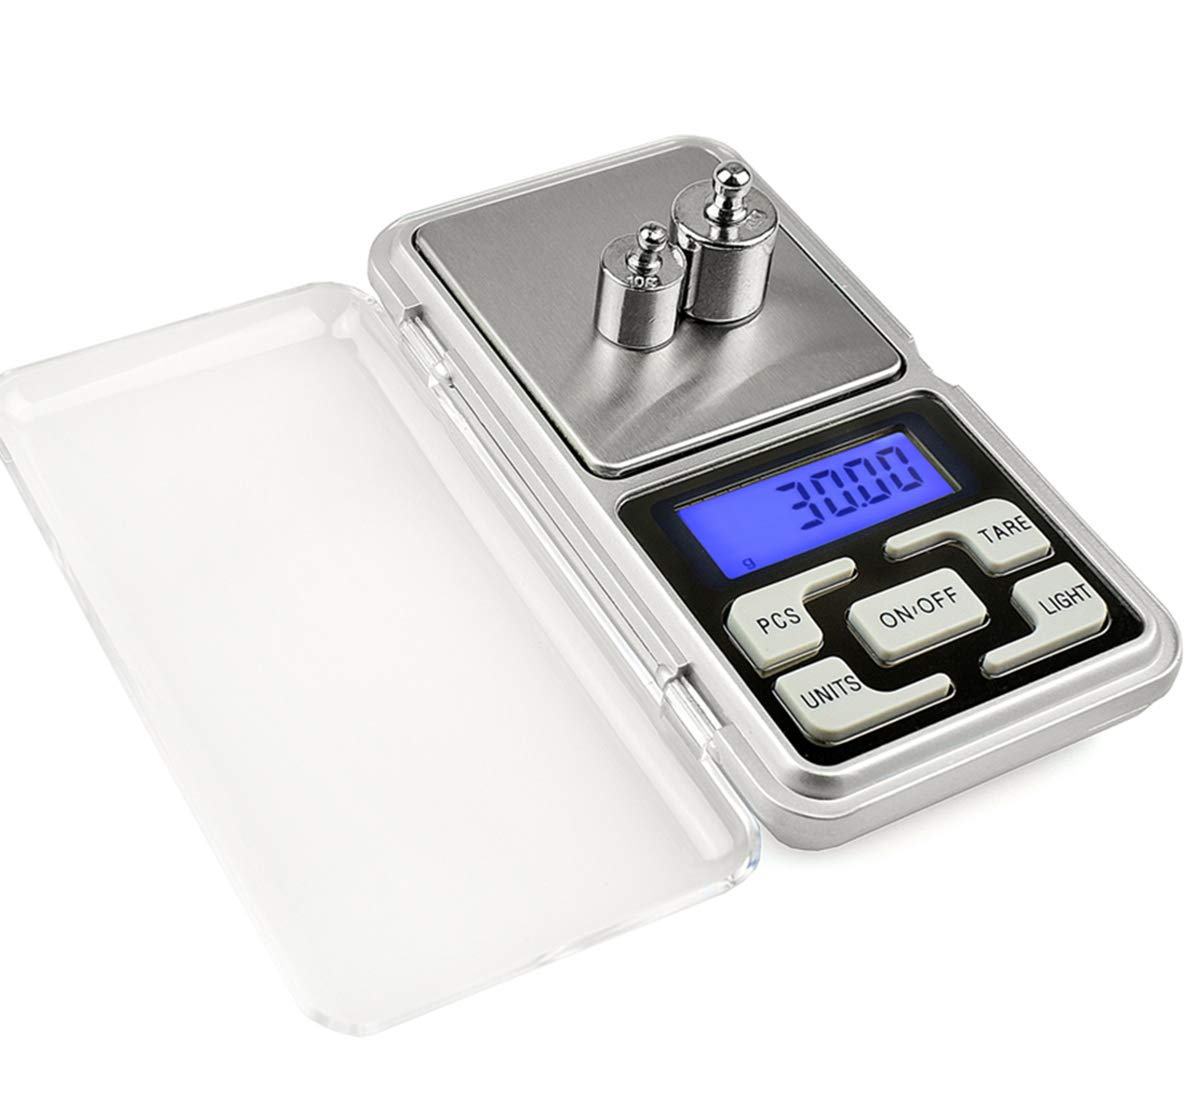 Meich Jewelry Scale Pocket Size High Precision Digital Milligram Scale Steelyard 1.1lb/500g (0.01g) Reloading for Jewelry and Gems Small Electronic Scale C32 by Meichoon